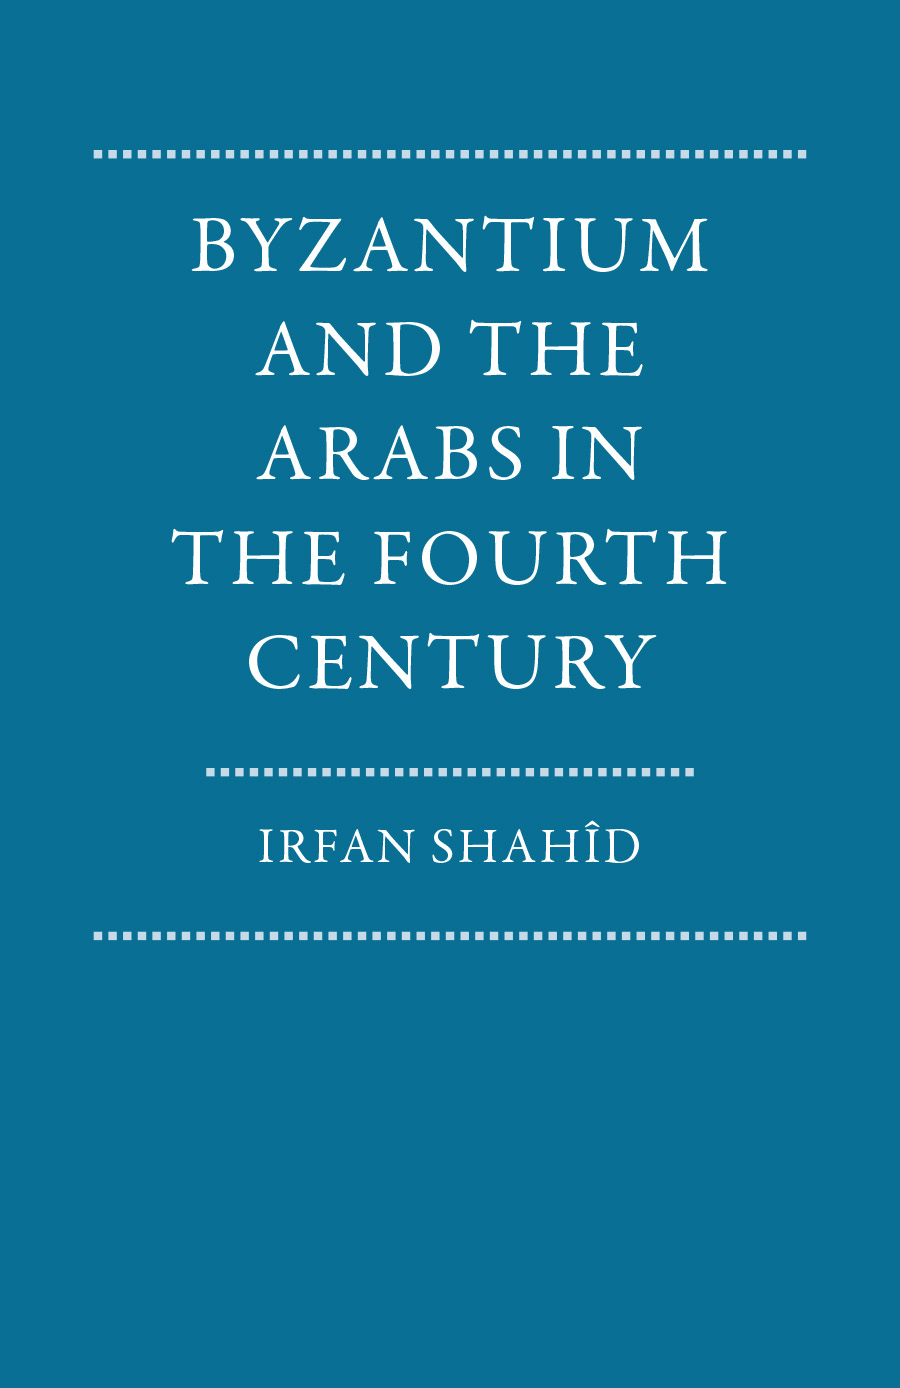 Byzantium and the Arabs in the Fourth Century